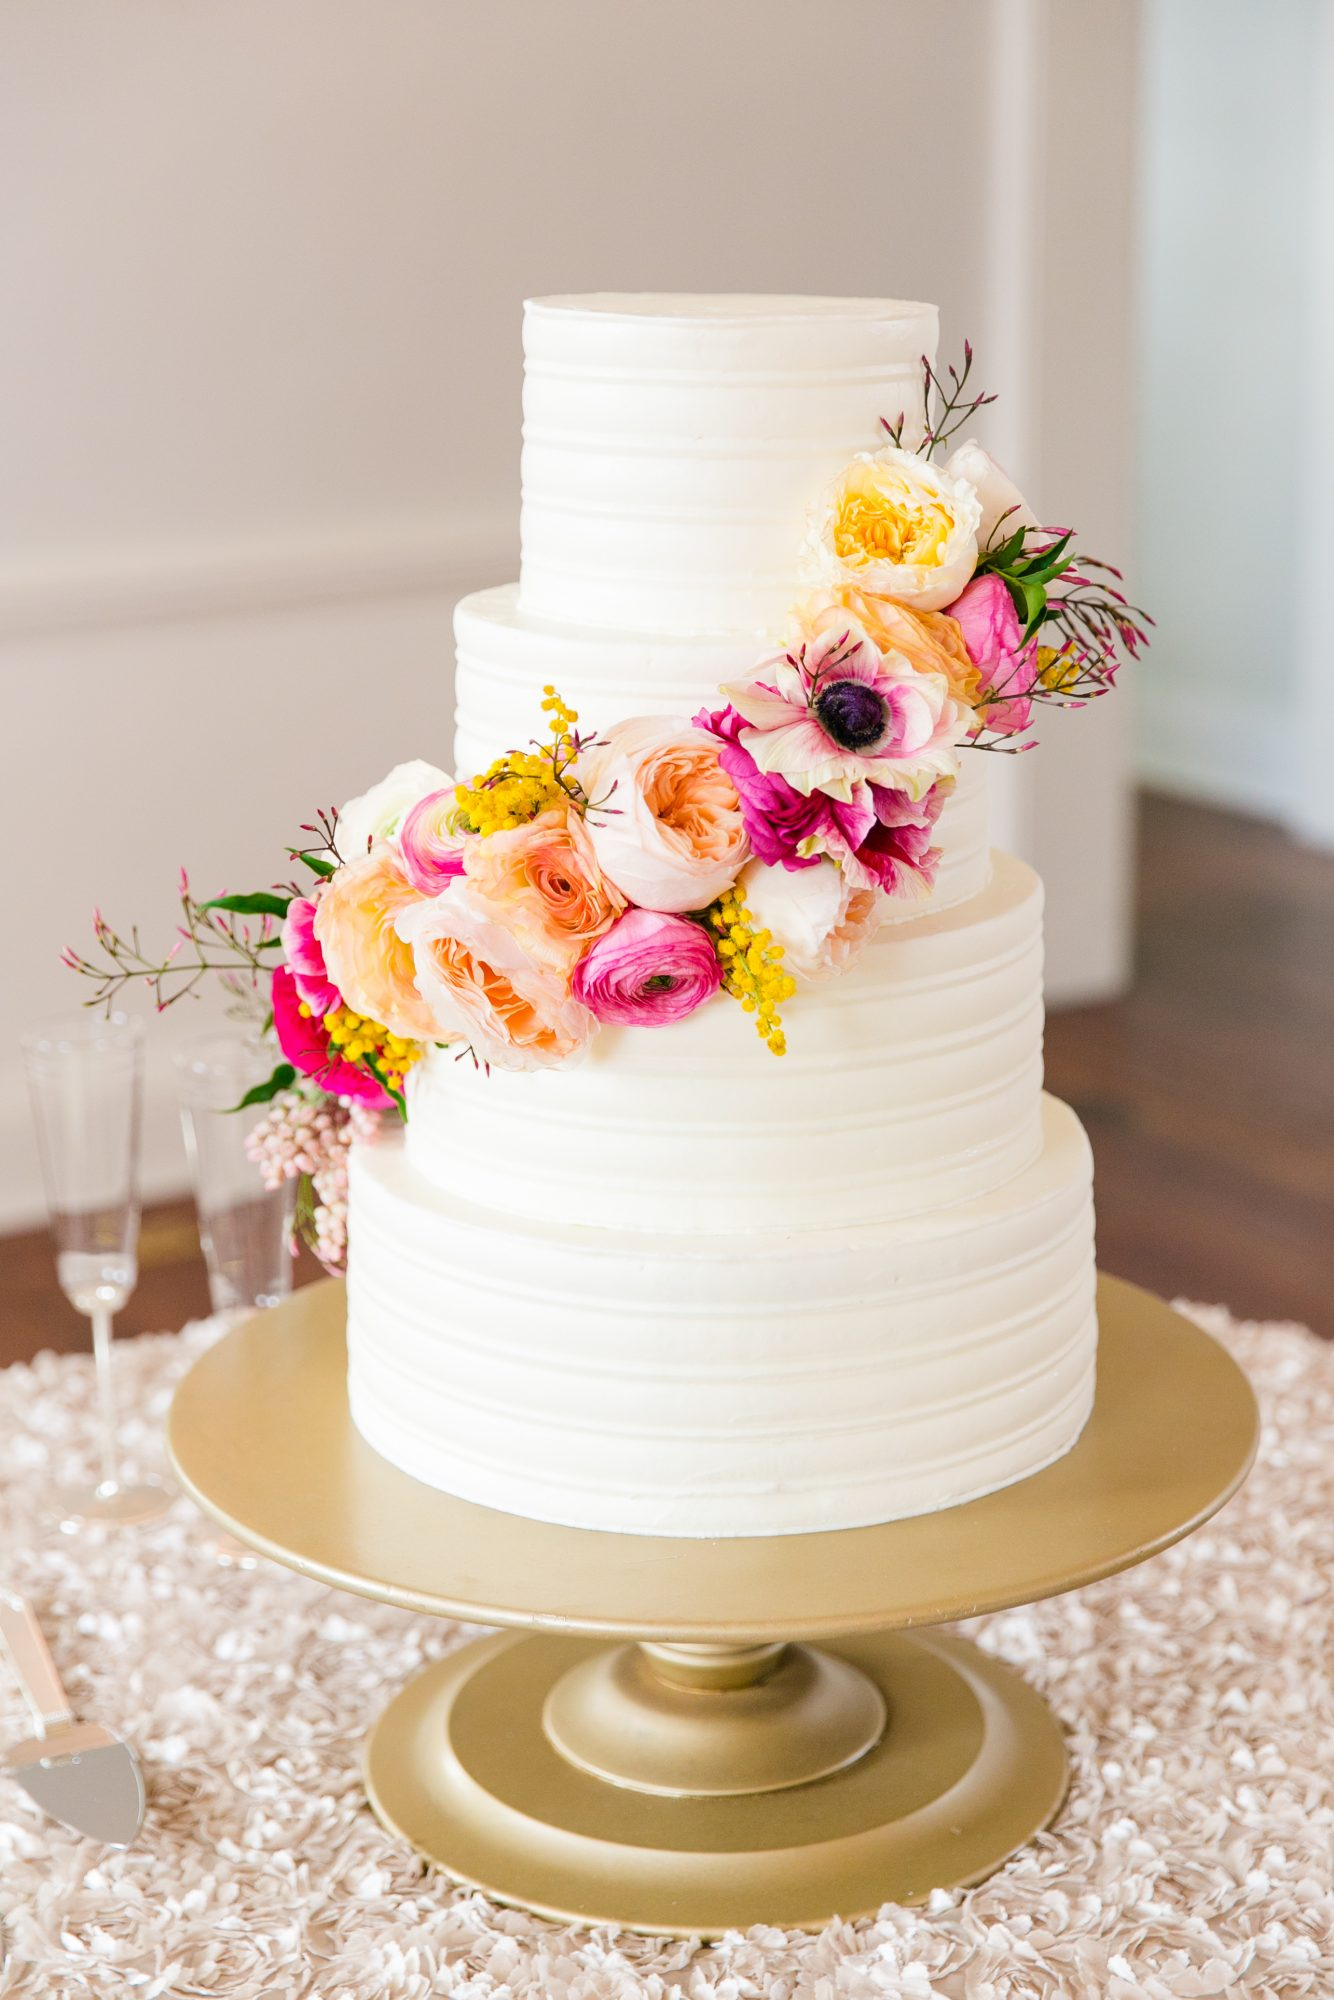 Pastels may be popular for spring weddings, but you can definitely opt for brighter shades, instead. This couple chose saturated pink and orange blooms for their cake.